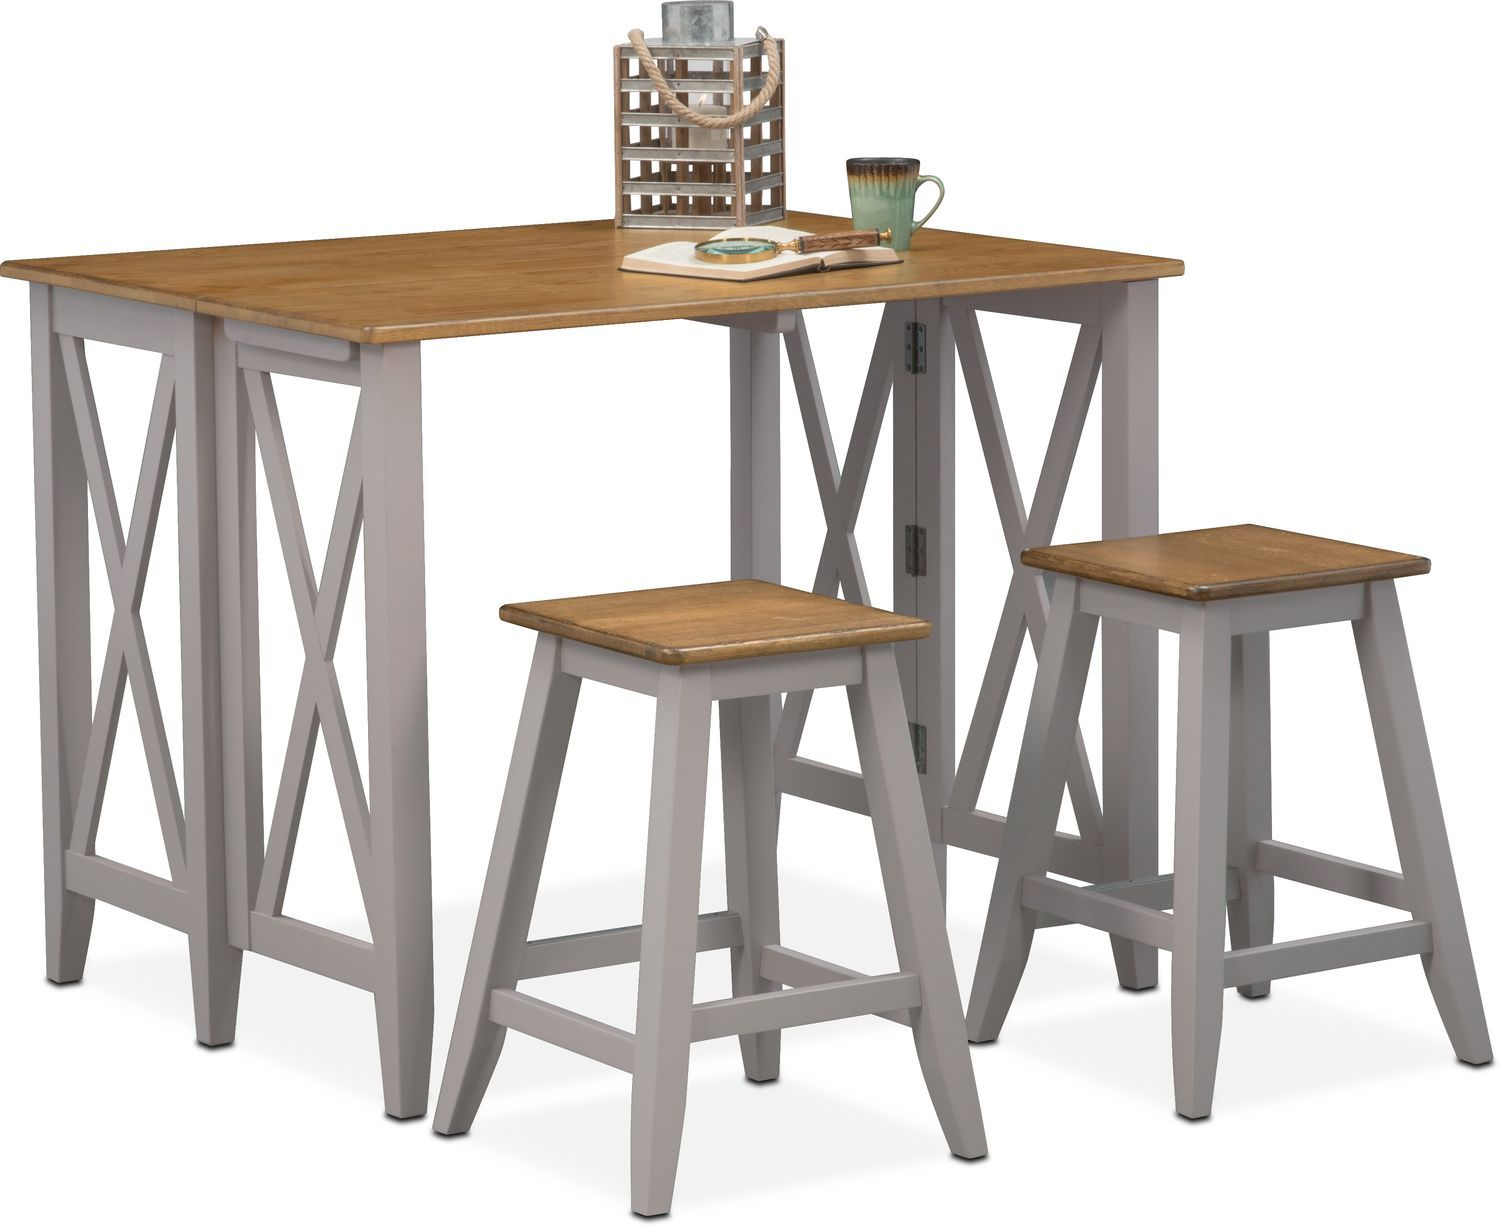 Nantucket Breakfast Bar And 2 Counter Height Stools Counter Height Stools Breakfast Bar Table Dining Room Sets